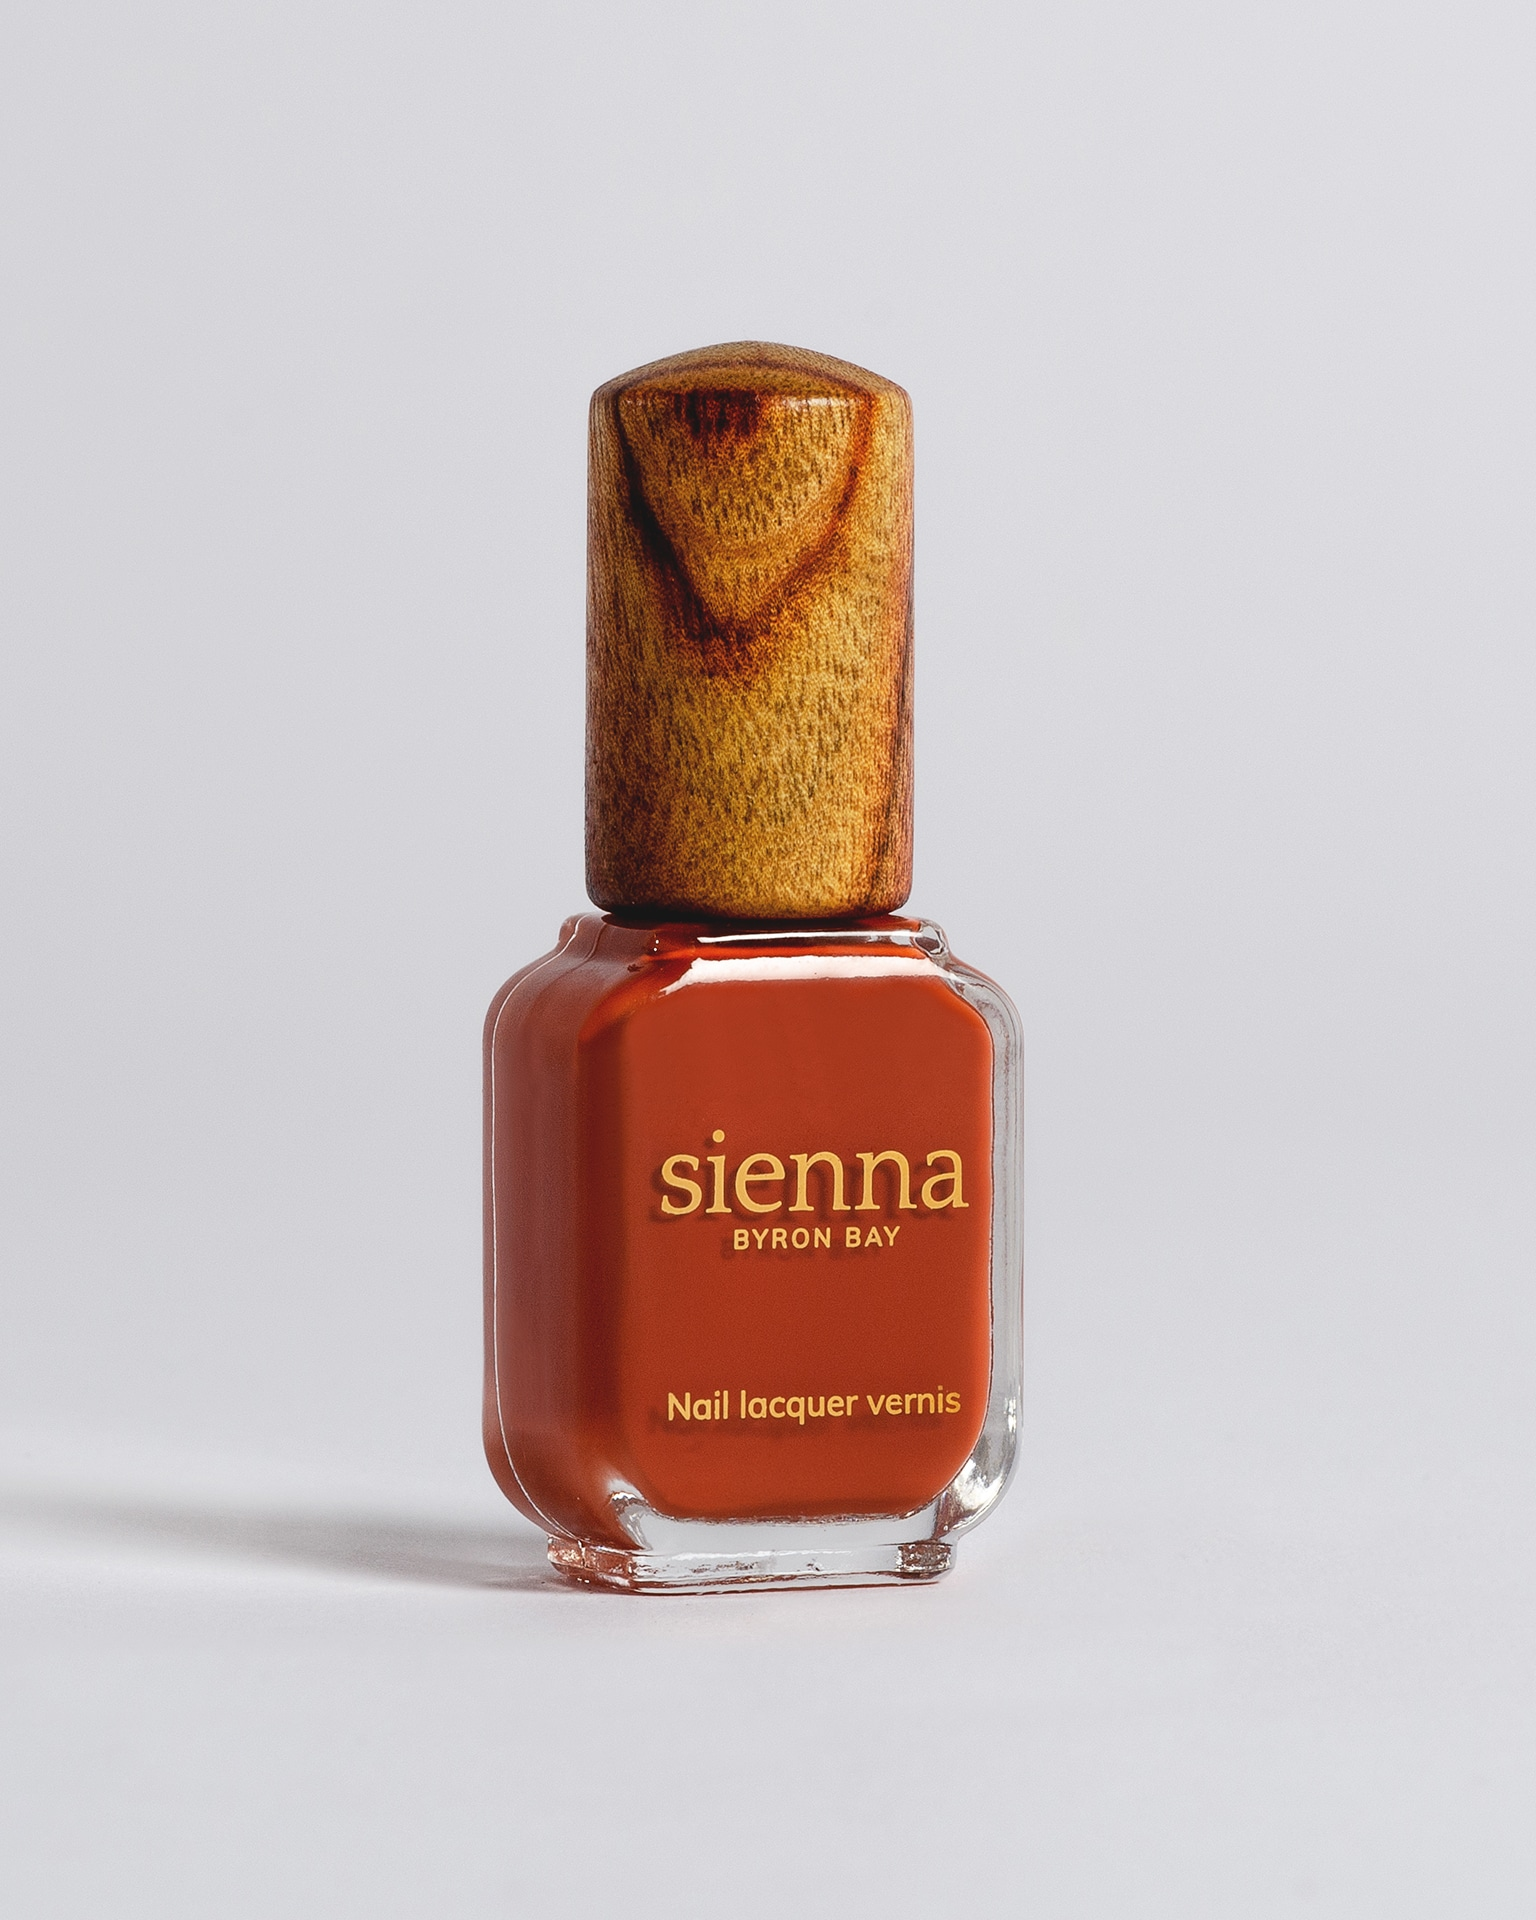 burnt orange nail polish bottle with timber cap by sienna